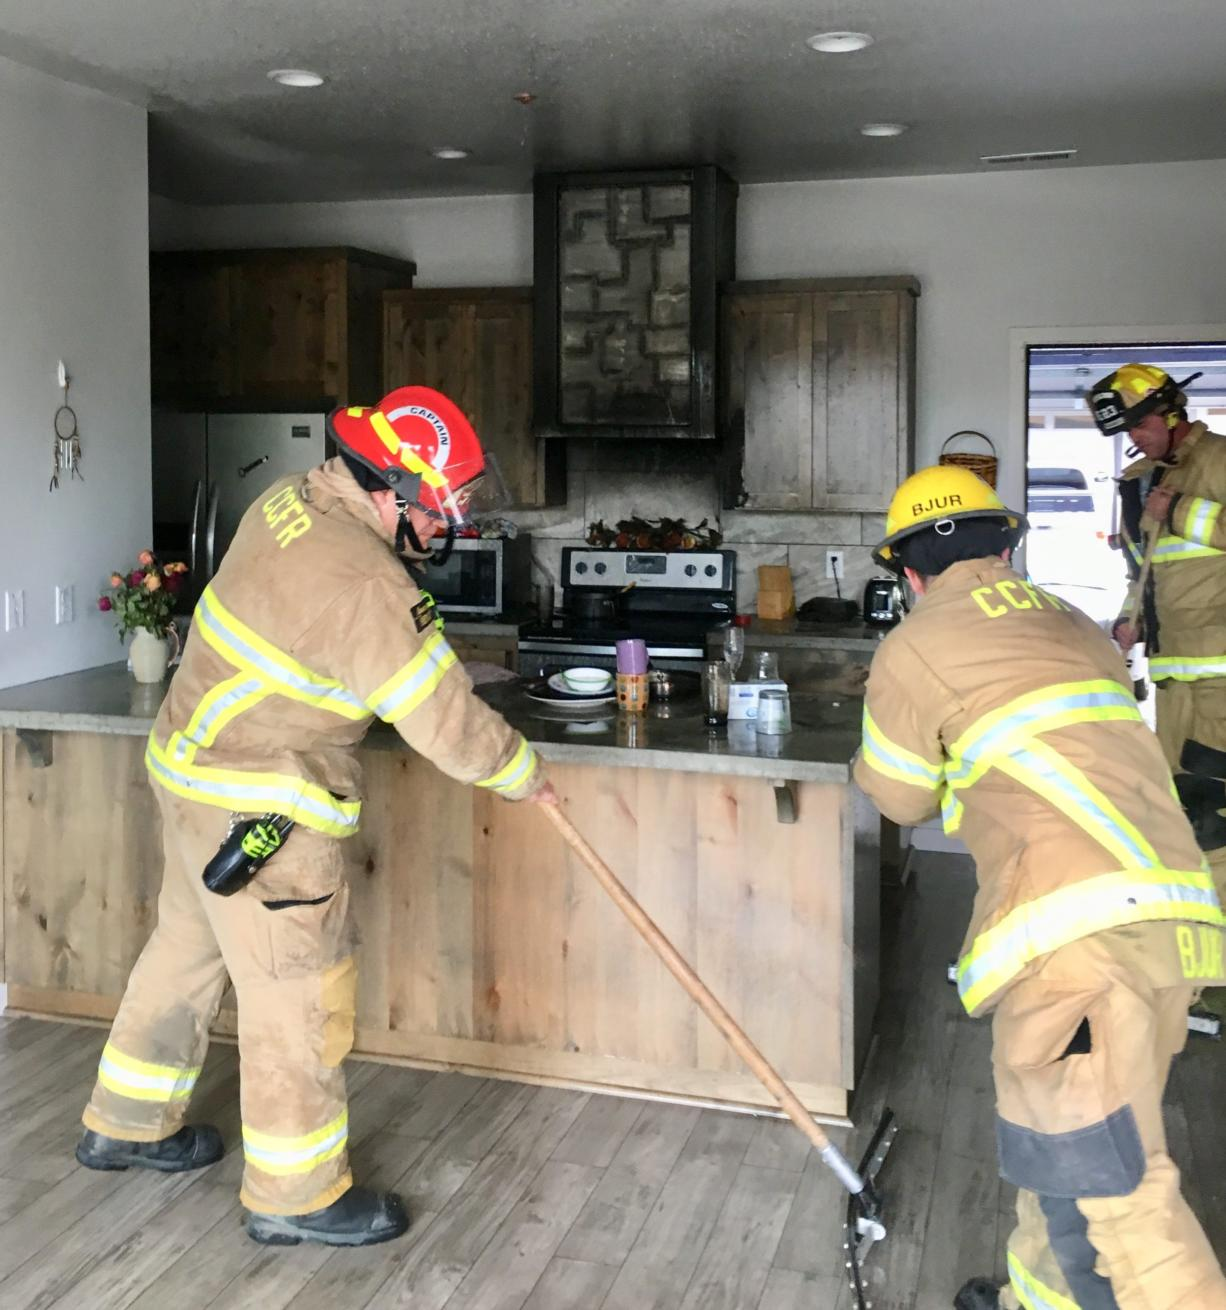 Firefighters clean up after a cooking fire Thursday morning at a Ridgefield condominium. The blaze was contained by a fire sprinkler system.